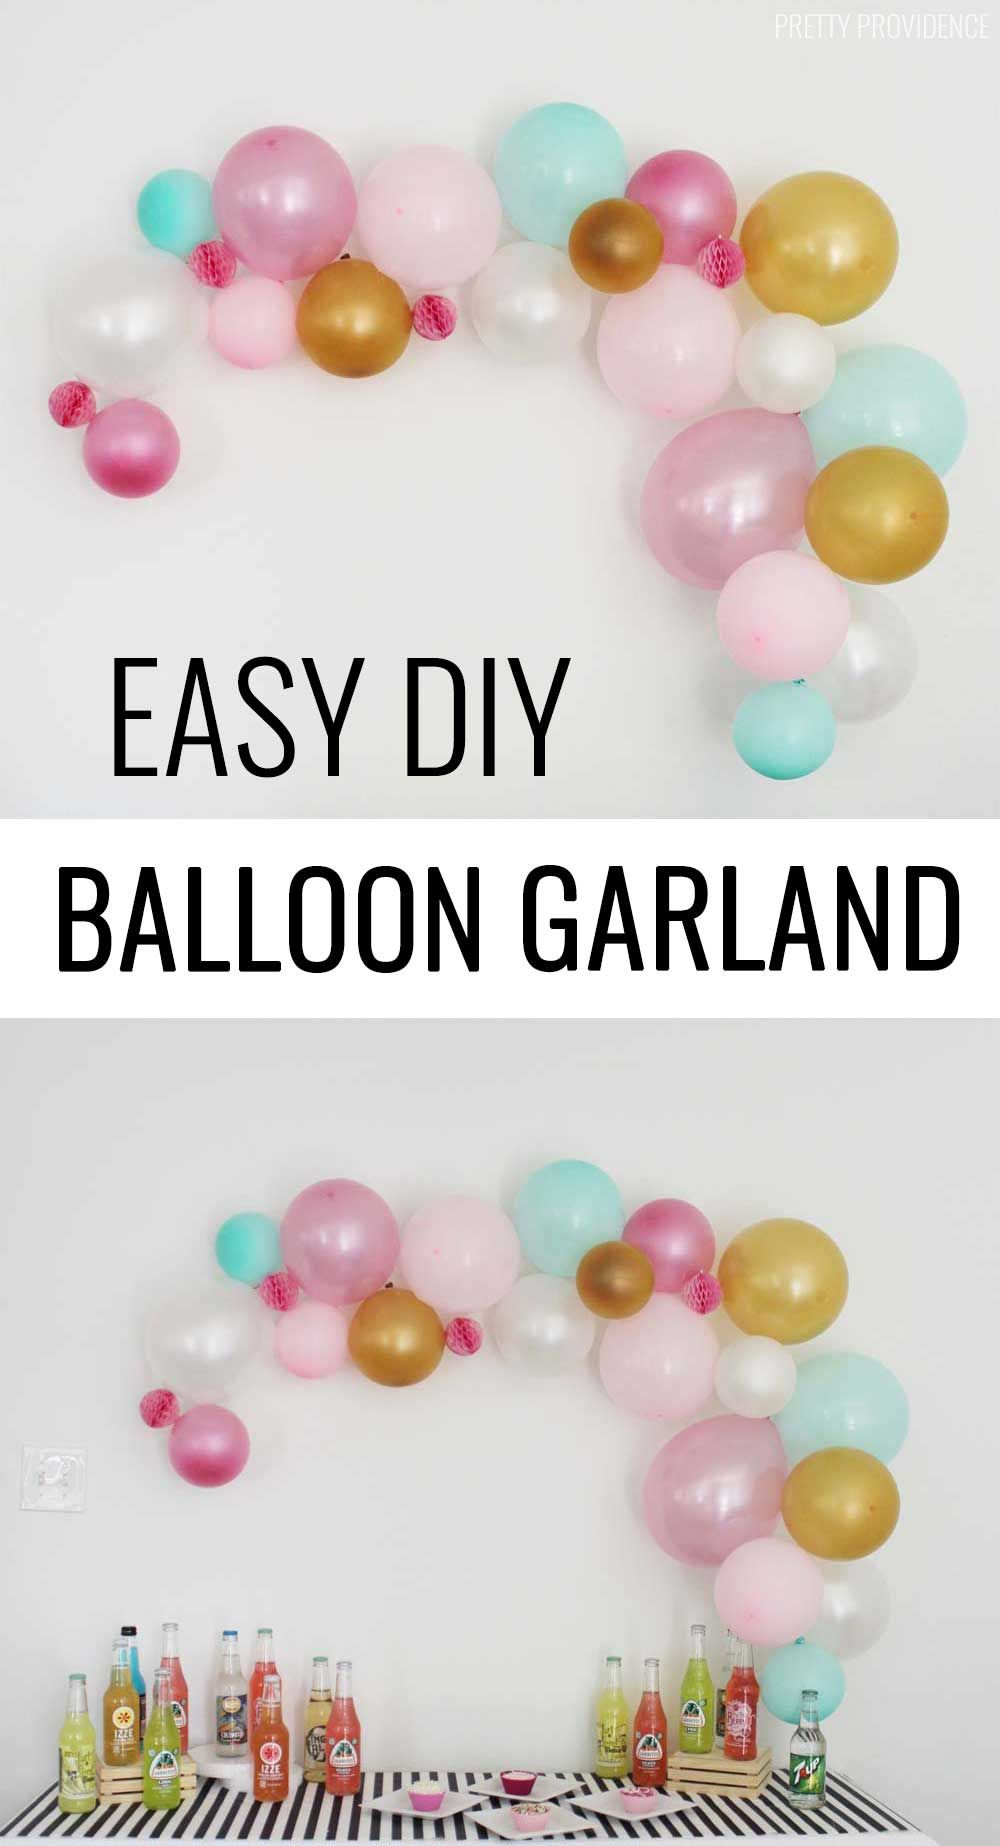 DIY Balloon Garland Balloon garland Garlands and Birthdays